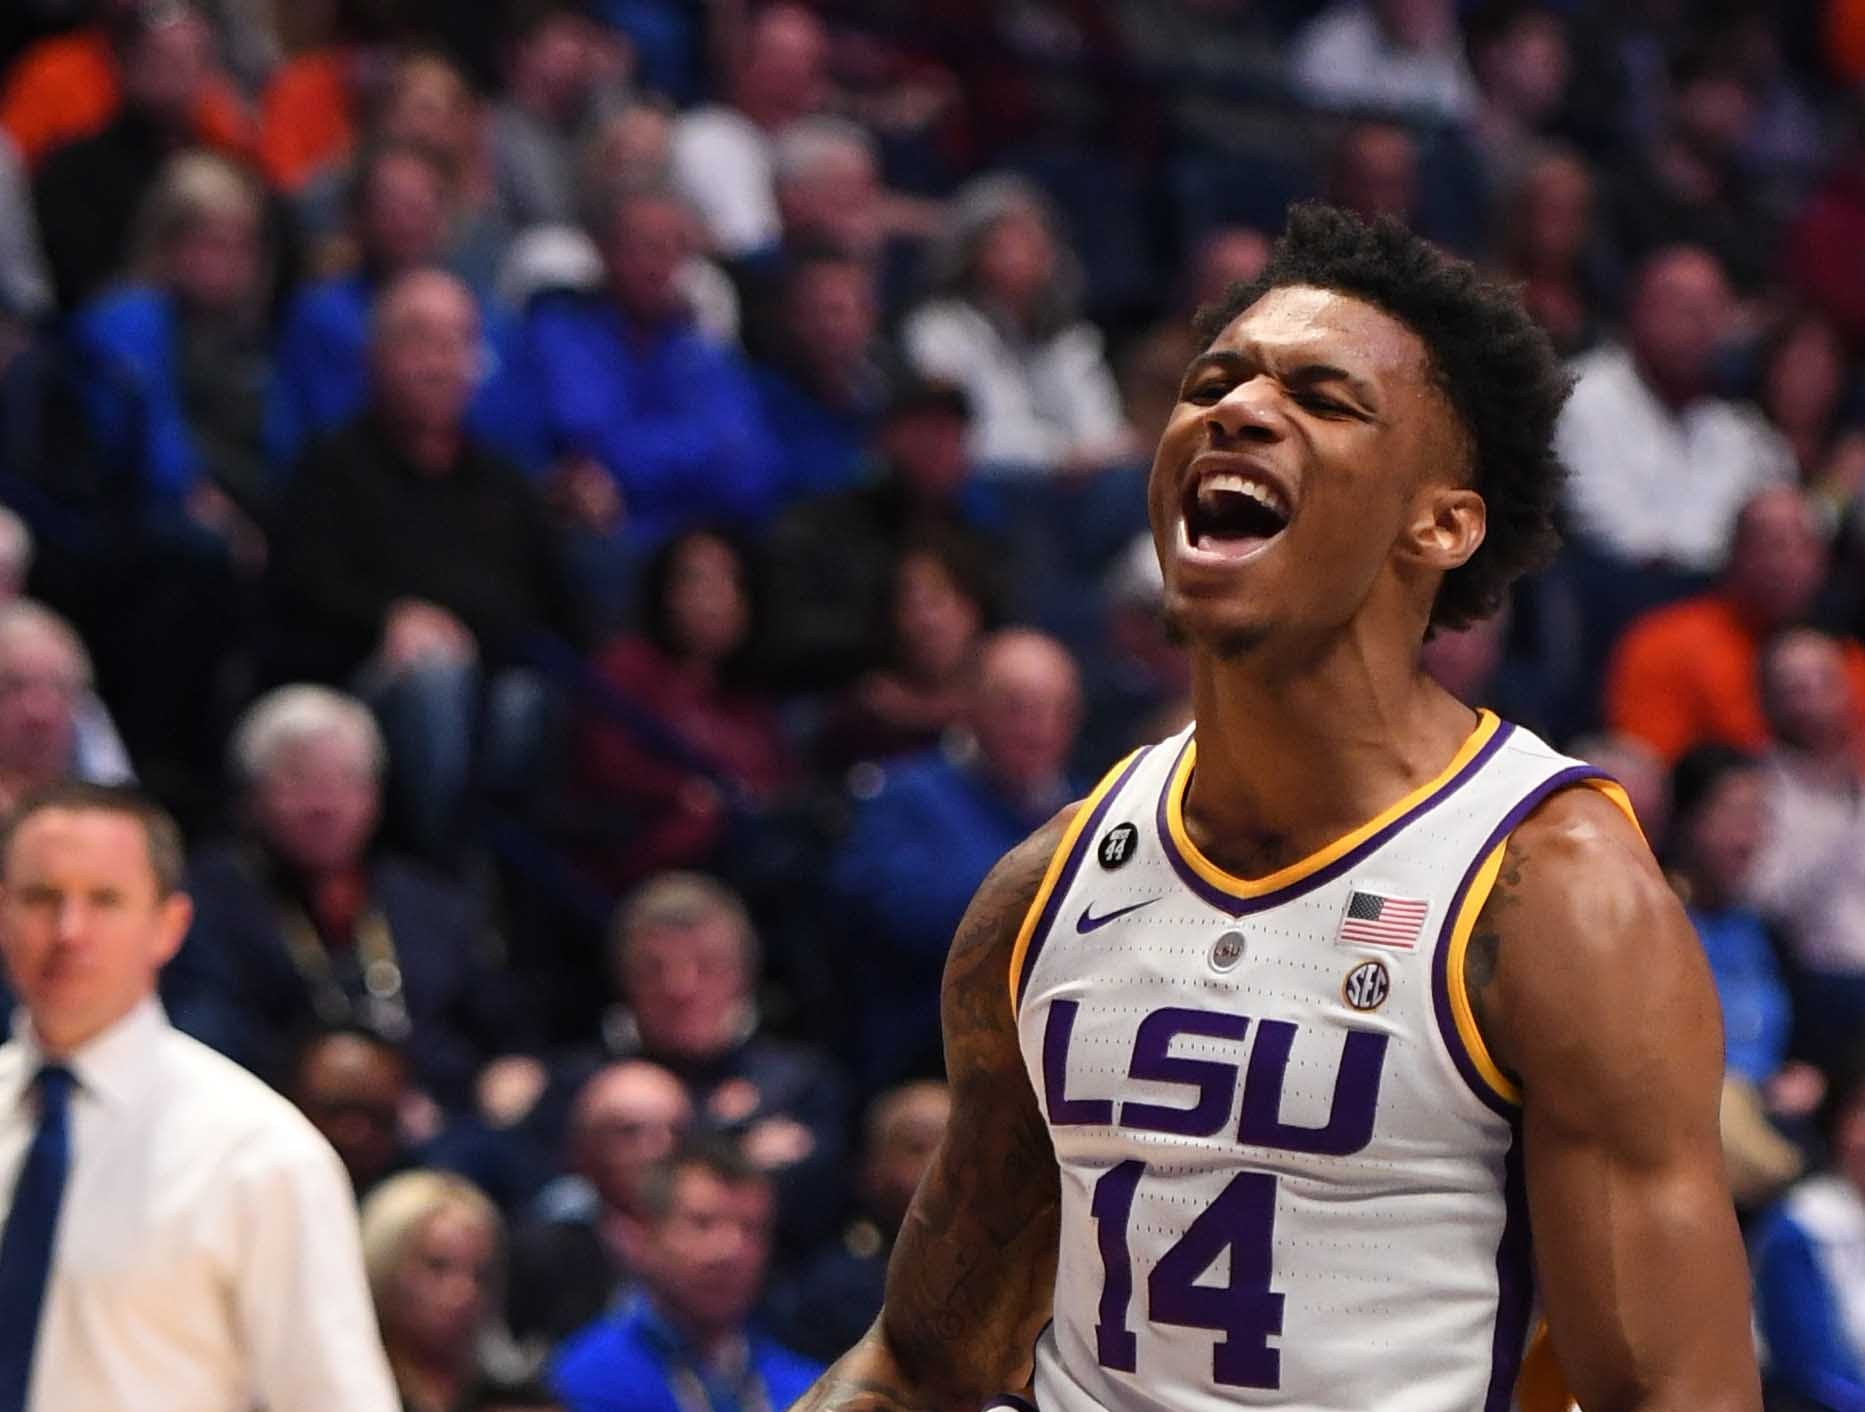 Mar 15, 2019; Nashville, TN, USA; LSU Tigers guard Marlon Taylor (14) celebrates after a dunk against the Florida Gators during the first half of the SEC conference tournament at Bridgestone Arena. Mandatory Credit: Christopher Hanewinckel-USA TODAY Sports